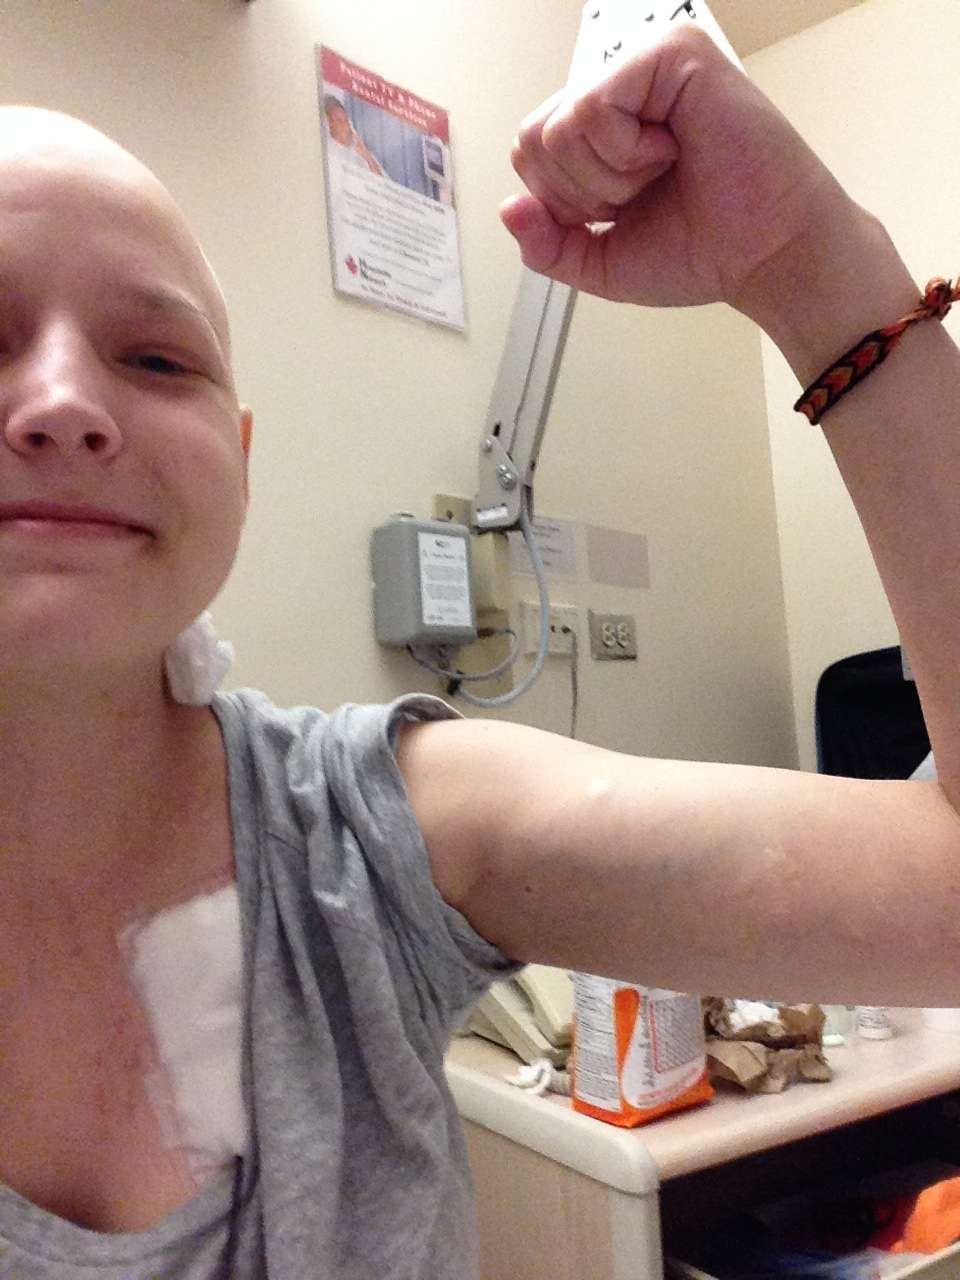 During chemo treatments